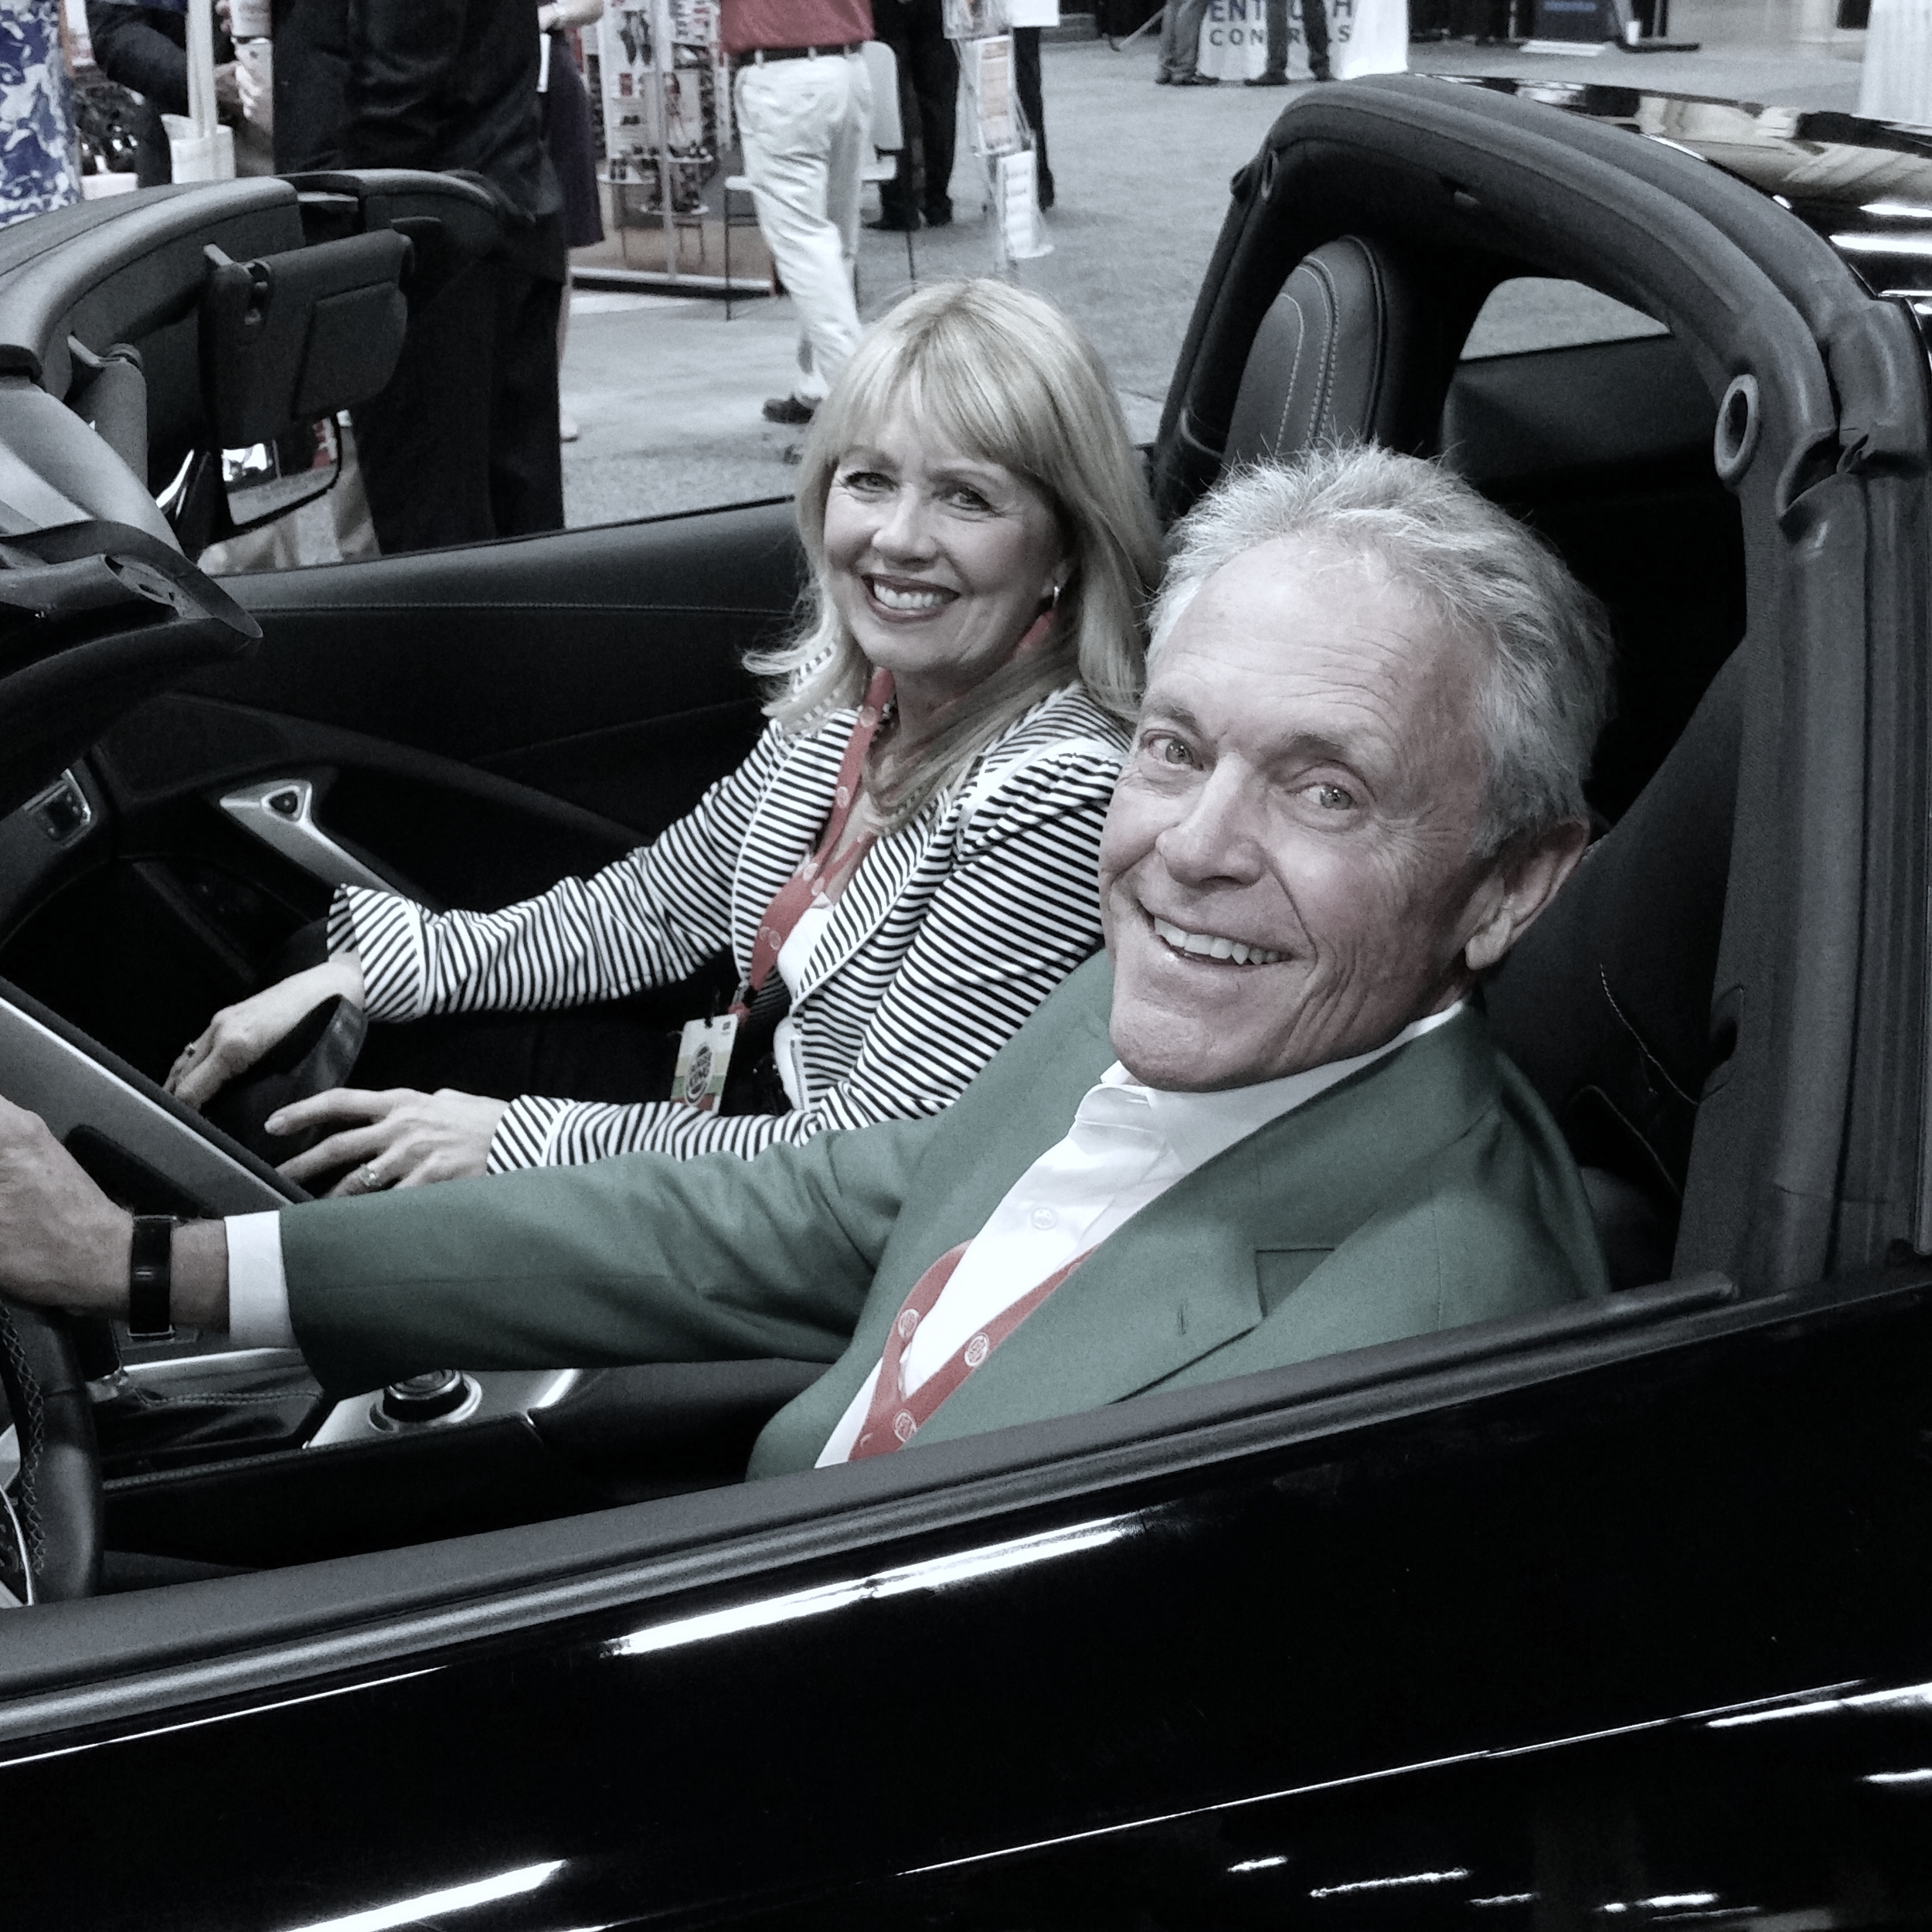 Tom Barnett in the Corvette he won and then sold in order to give his employees $120,000 in bonuses.